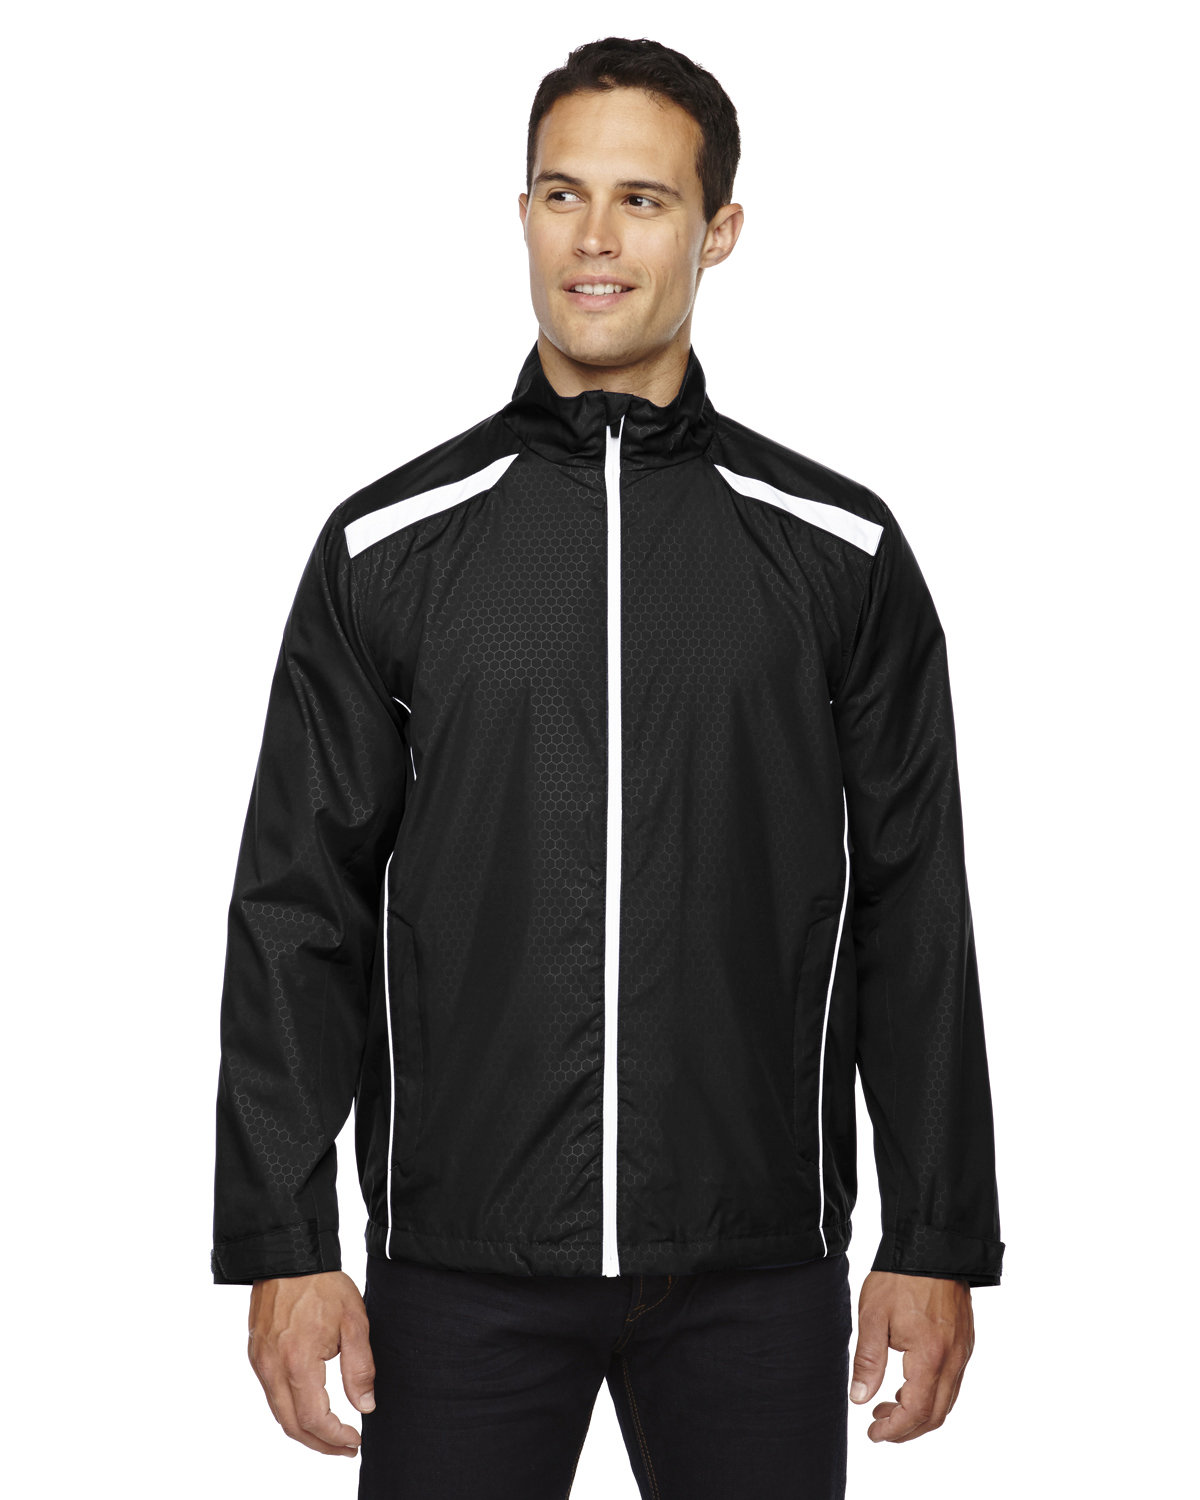 North End Men's Tempo Lightweight Recycled Polyester Jacket with Embossed Print BLACK